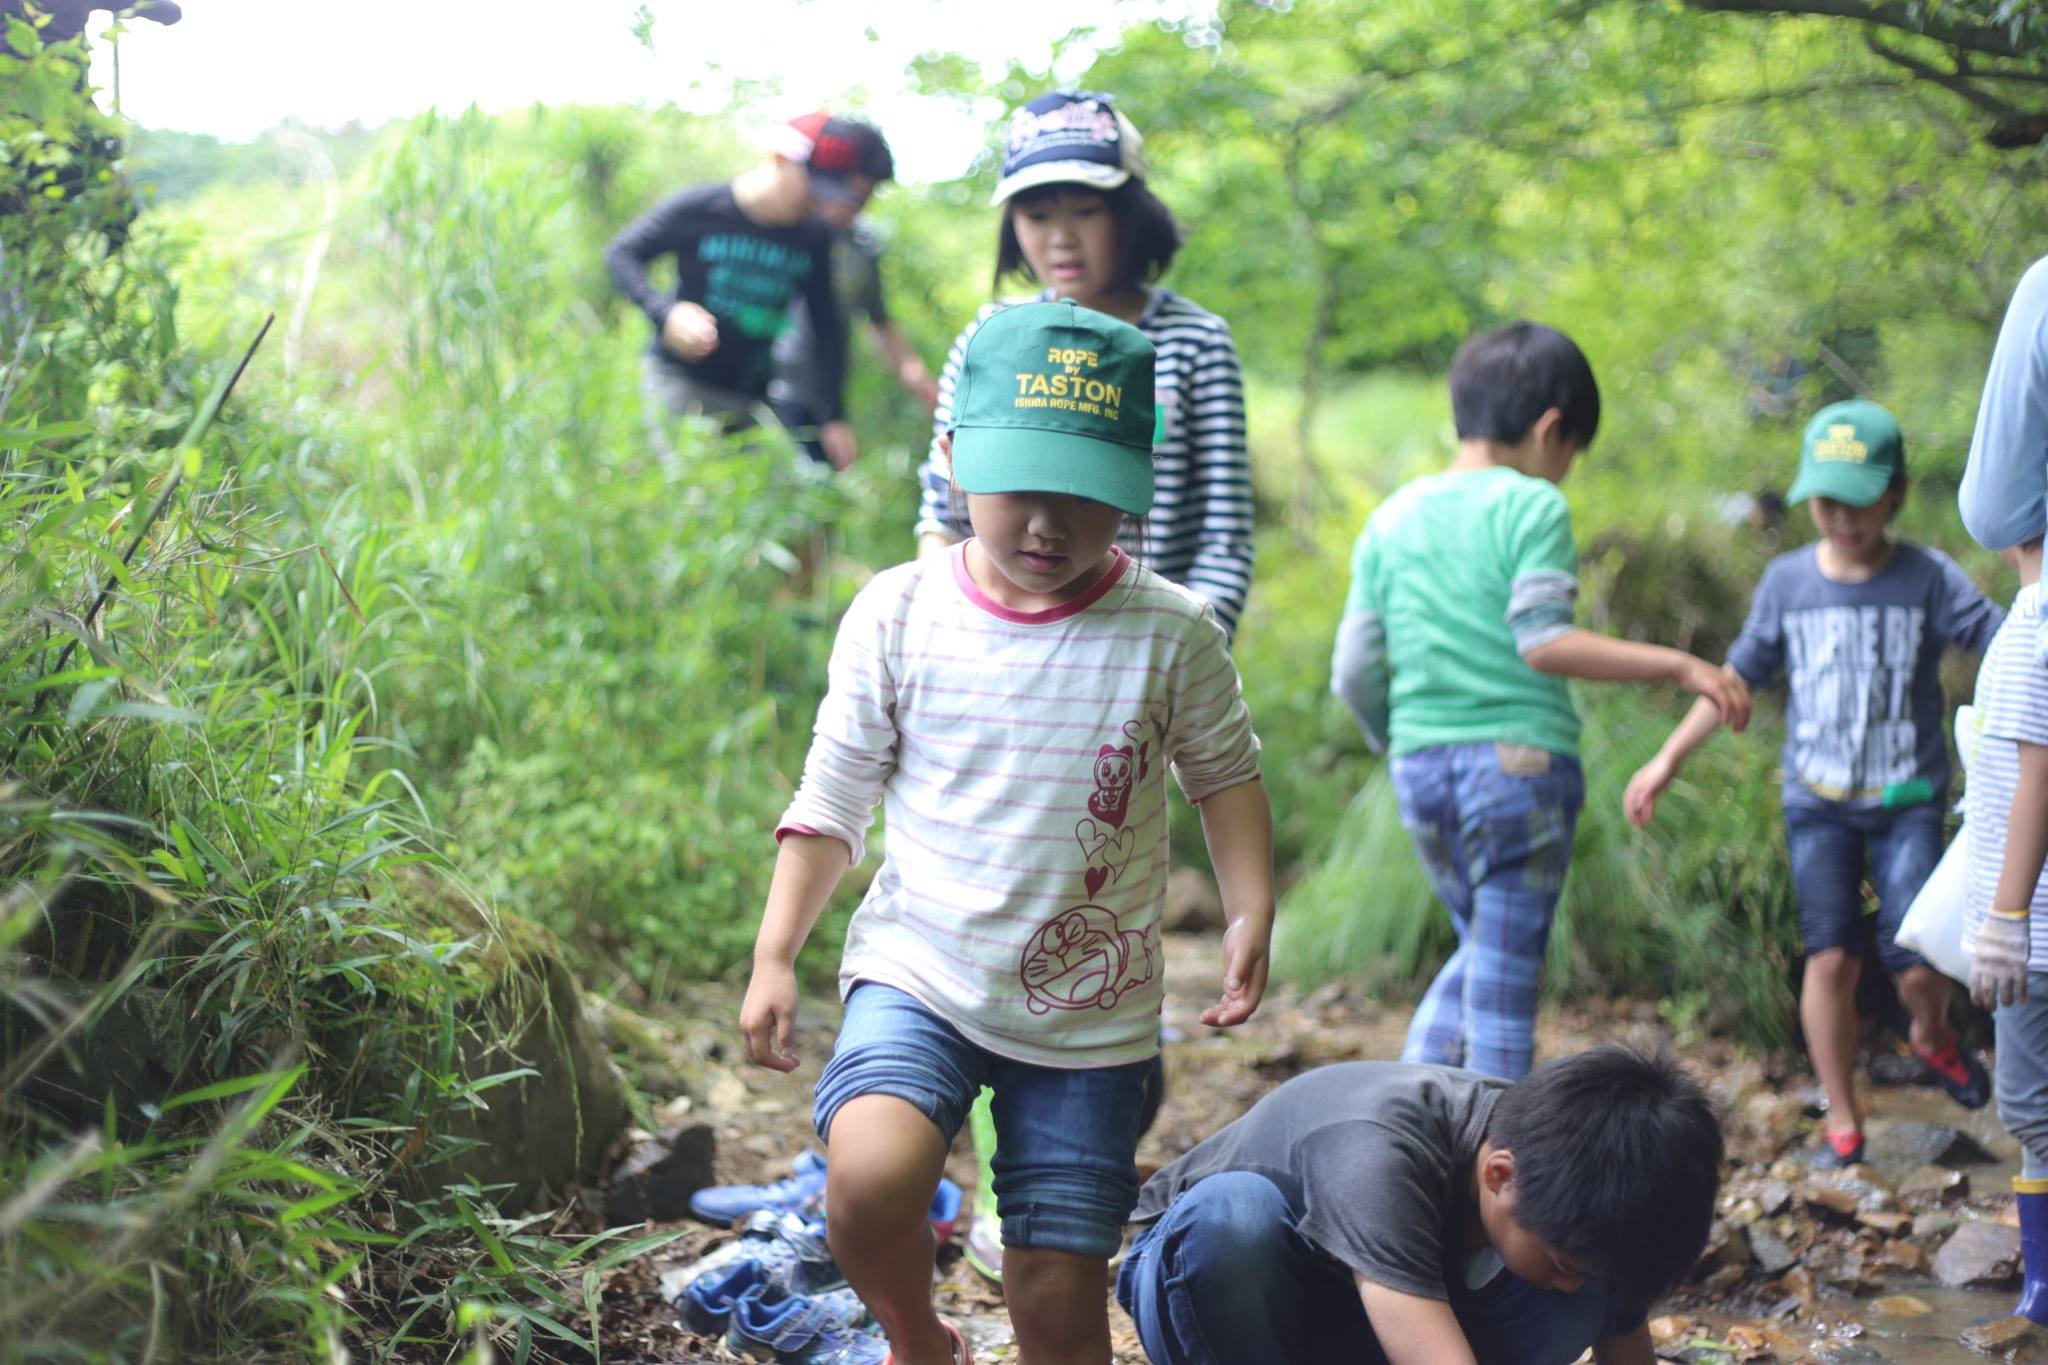 photograph of a group of children playing around in a wooded area